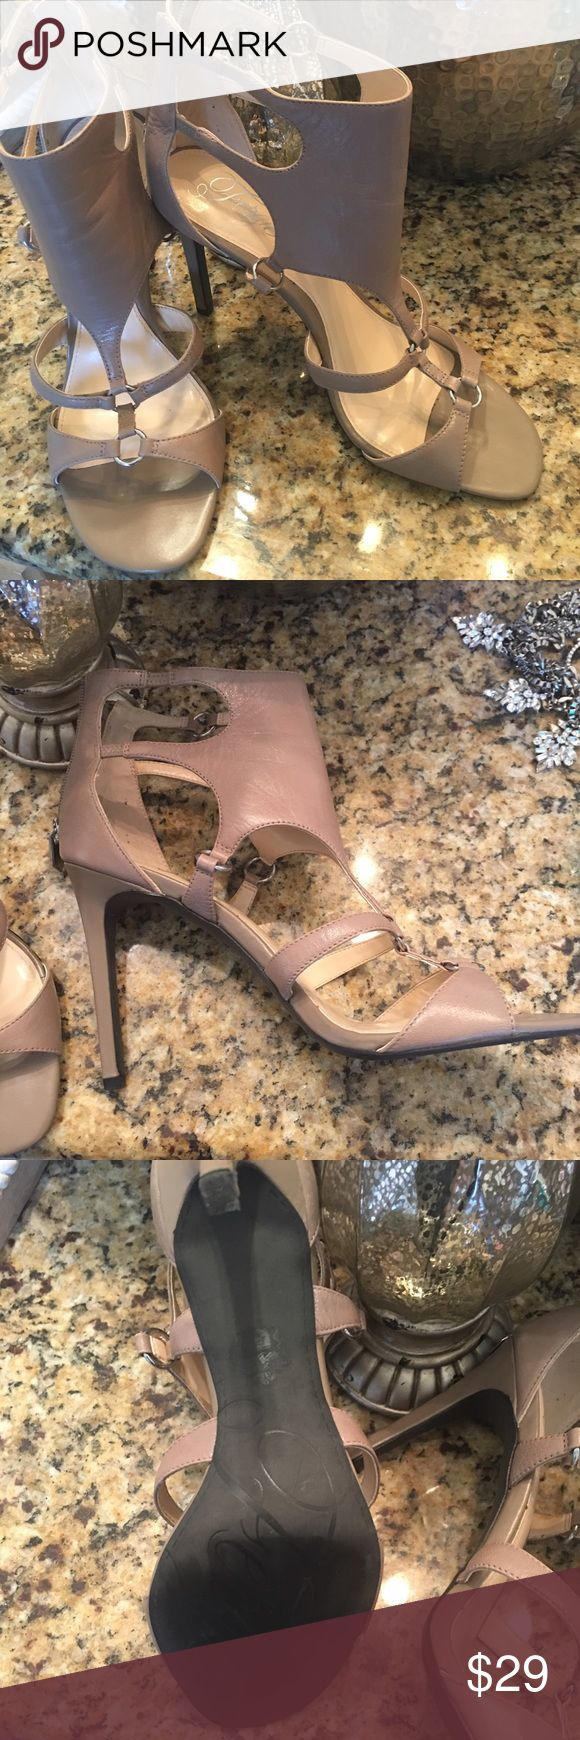 """Fergie taupe leather heels Fergie """"Talisha"""" leather ankle strap heel Fergie Shoes Heels"""